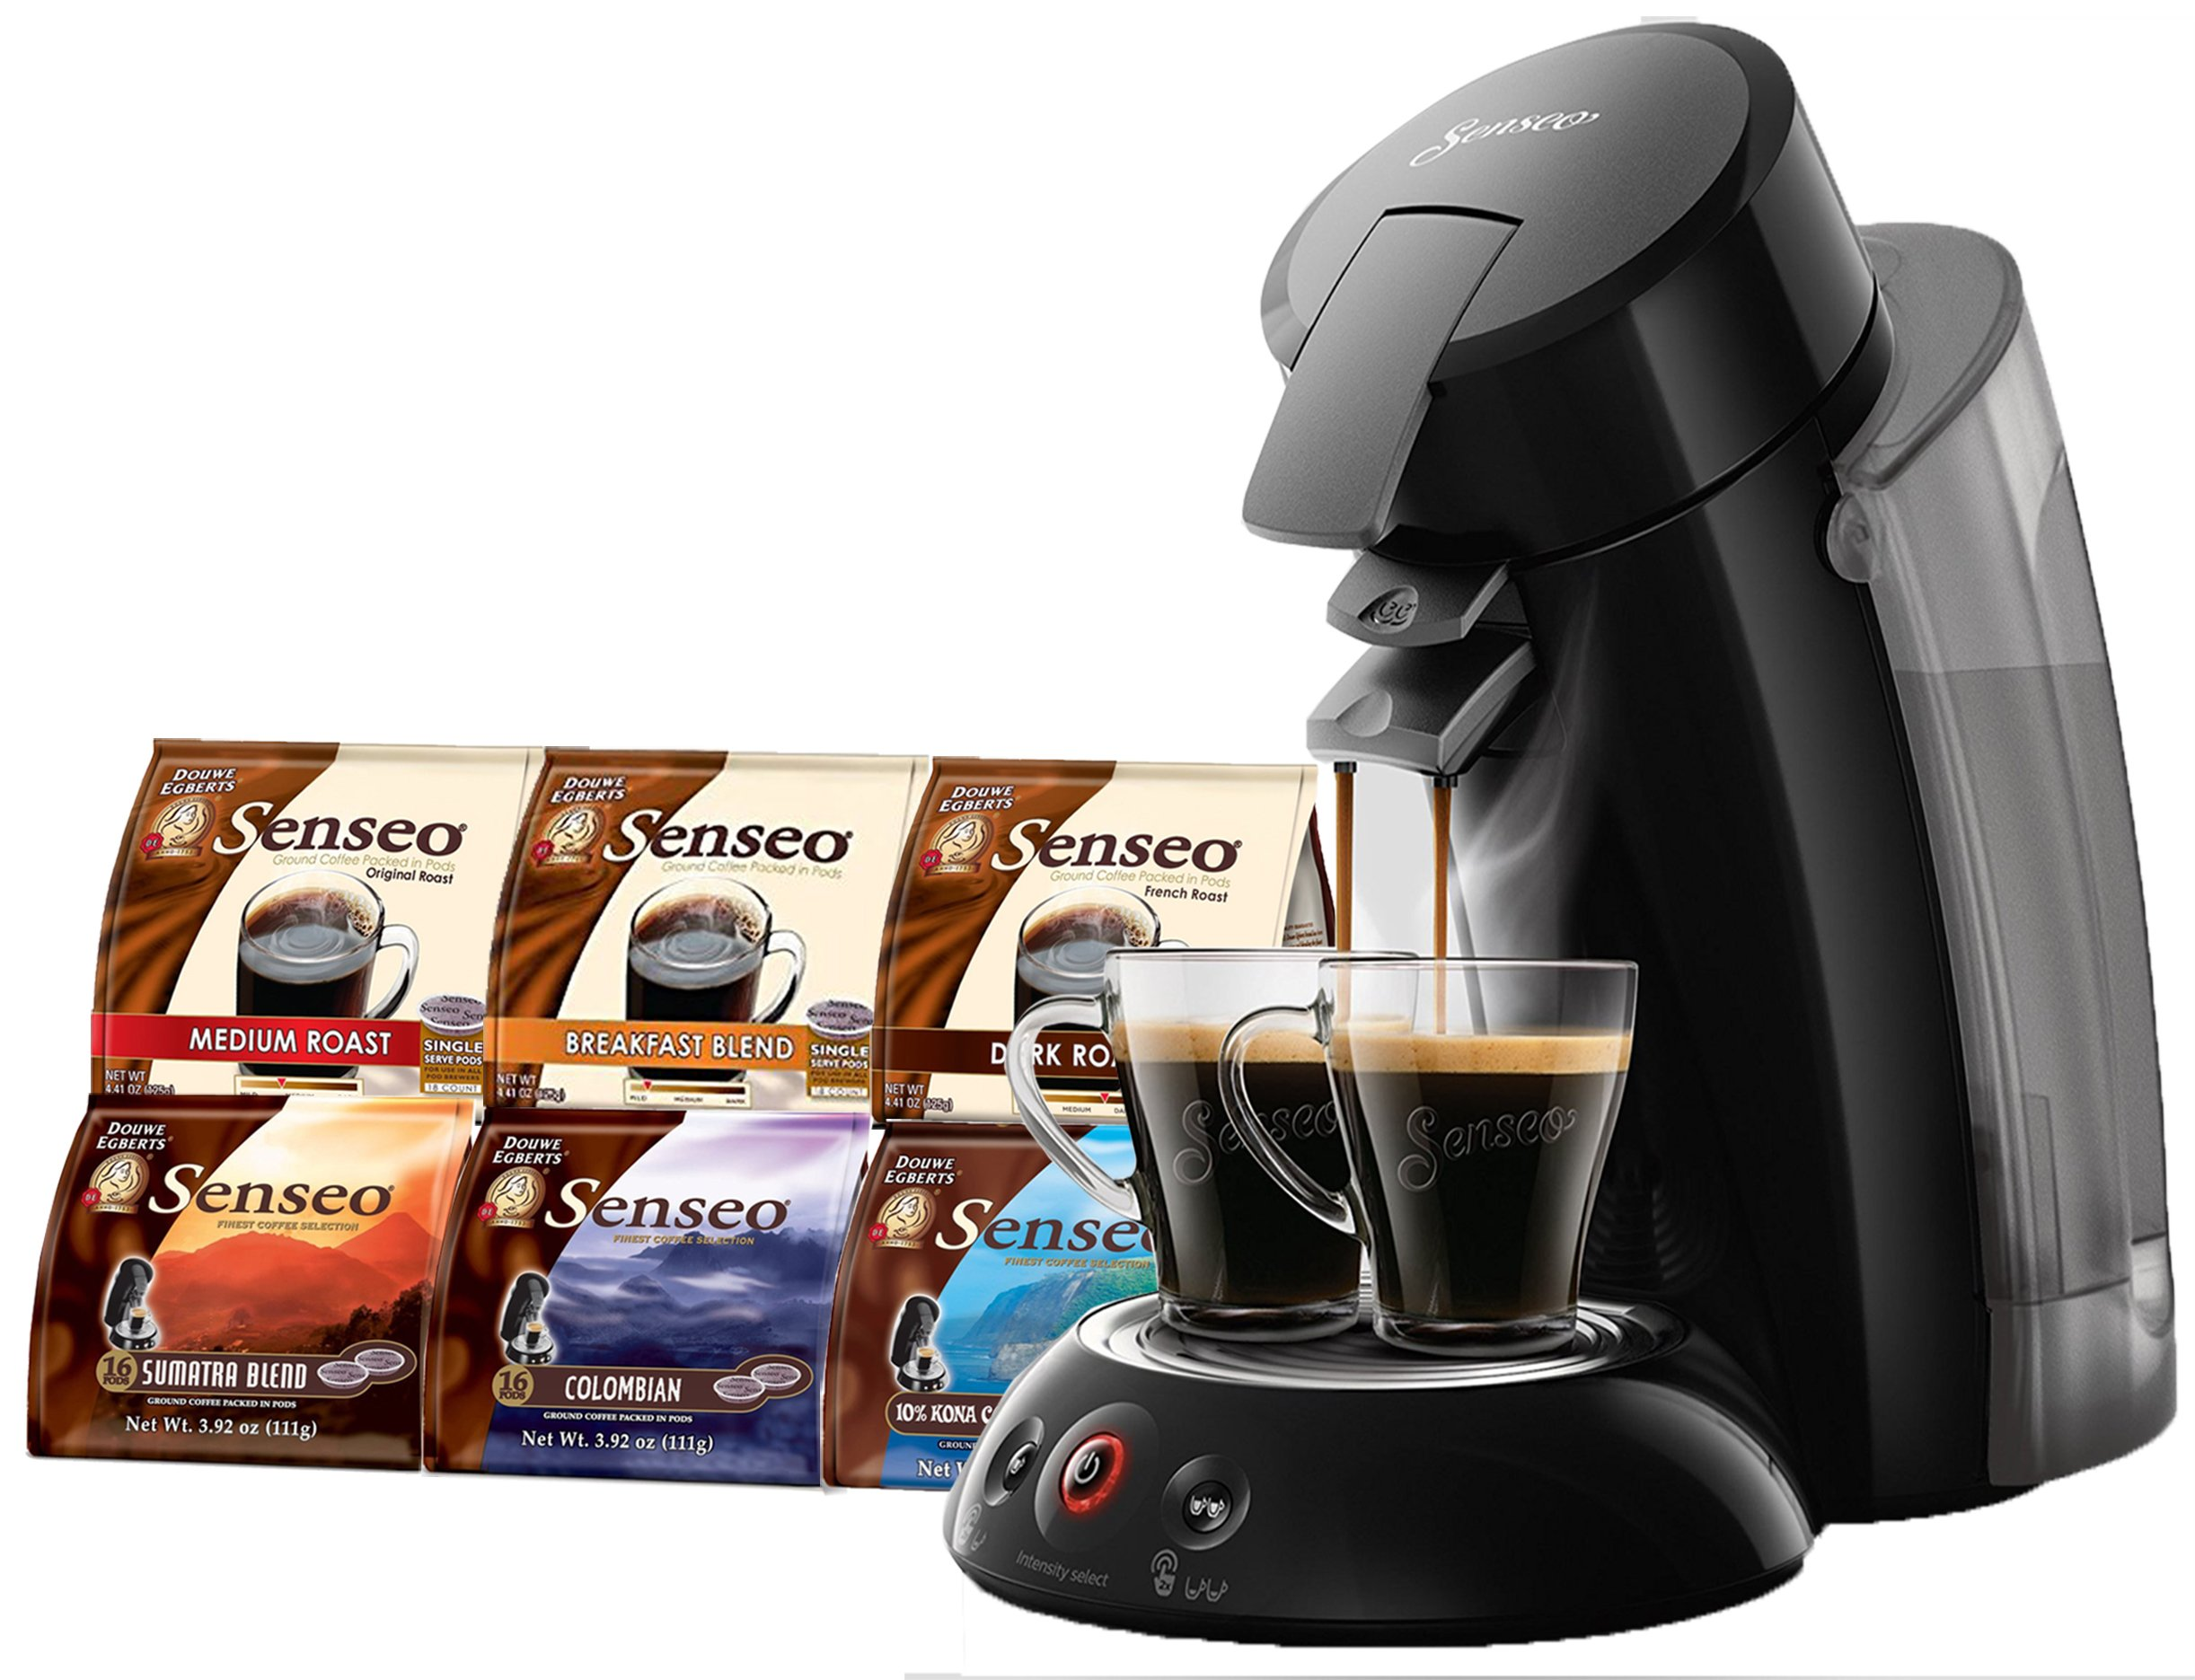 Senseo Coffee Maker XL - Model 2018 Bundle including Senseo Coffee Variety Pack Sampler -6-flavor (Pack of 6) by Senseo (Image #1)